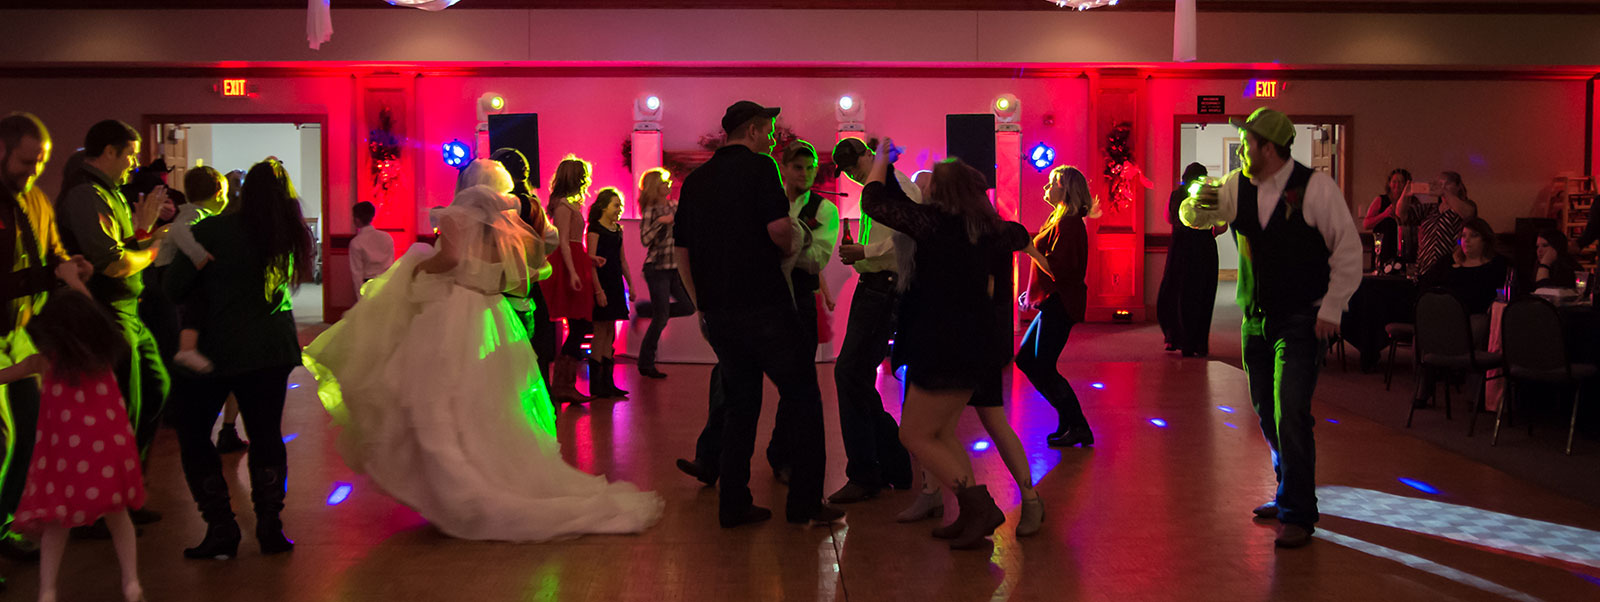 Party Hits Music and Light Show - Wisconsin DJ Dance Weddings Events